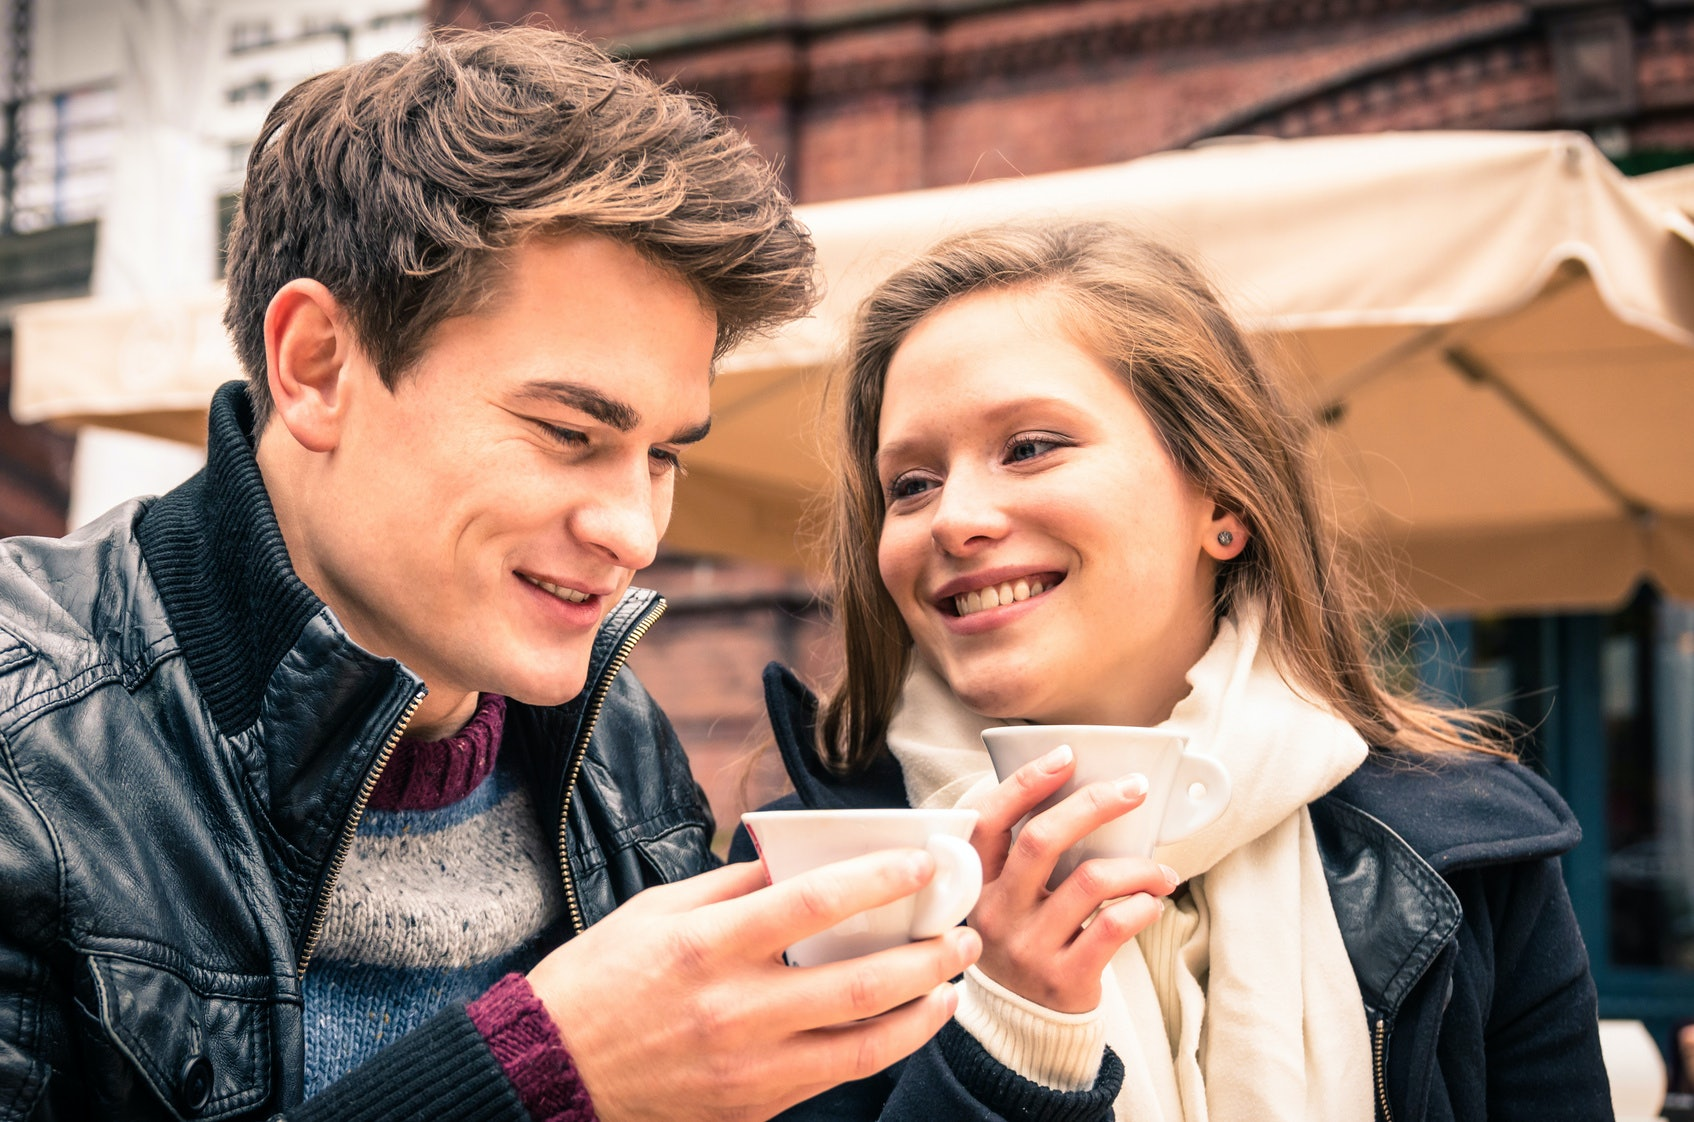 How to really get to know someone when dating